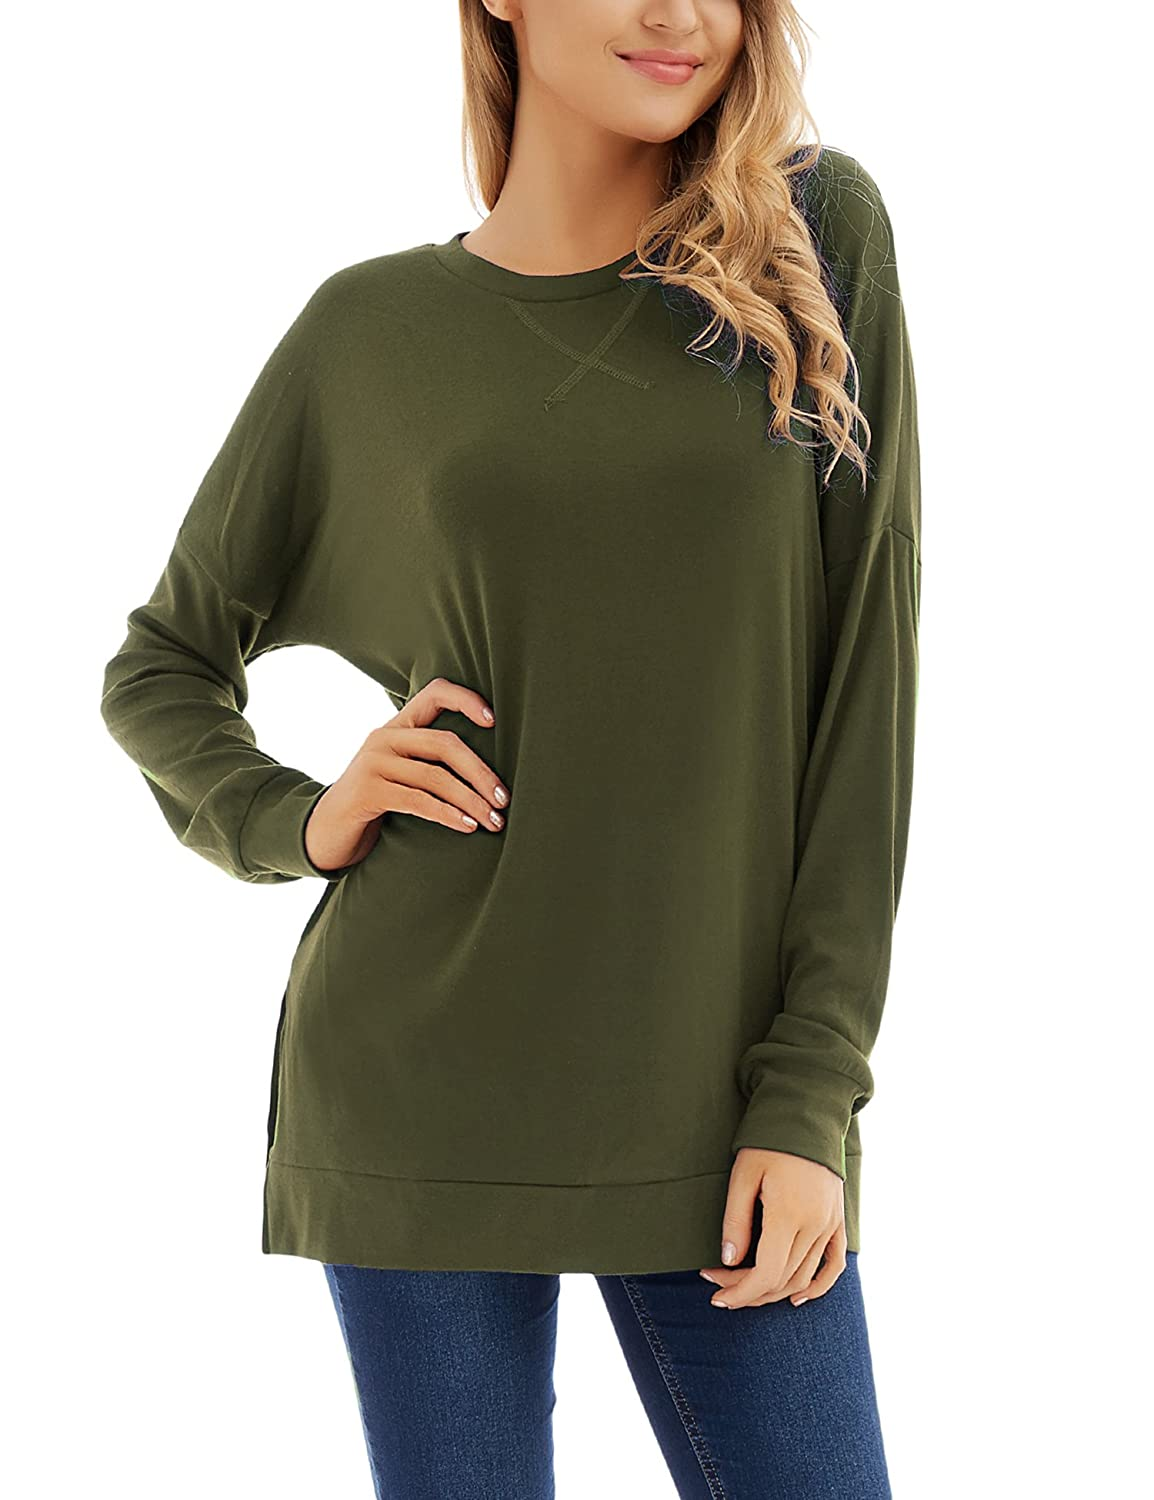 04cfd86fcddfa Top 10 wholesale Long Sleeve Side Split Tunic - Chinabrands.com